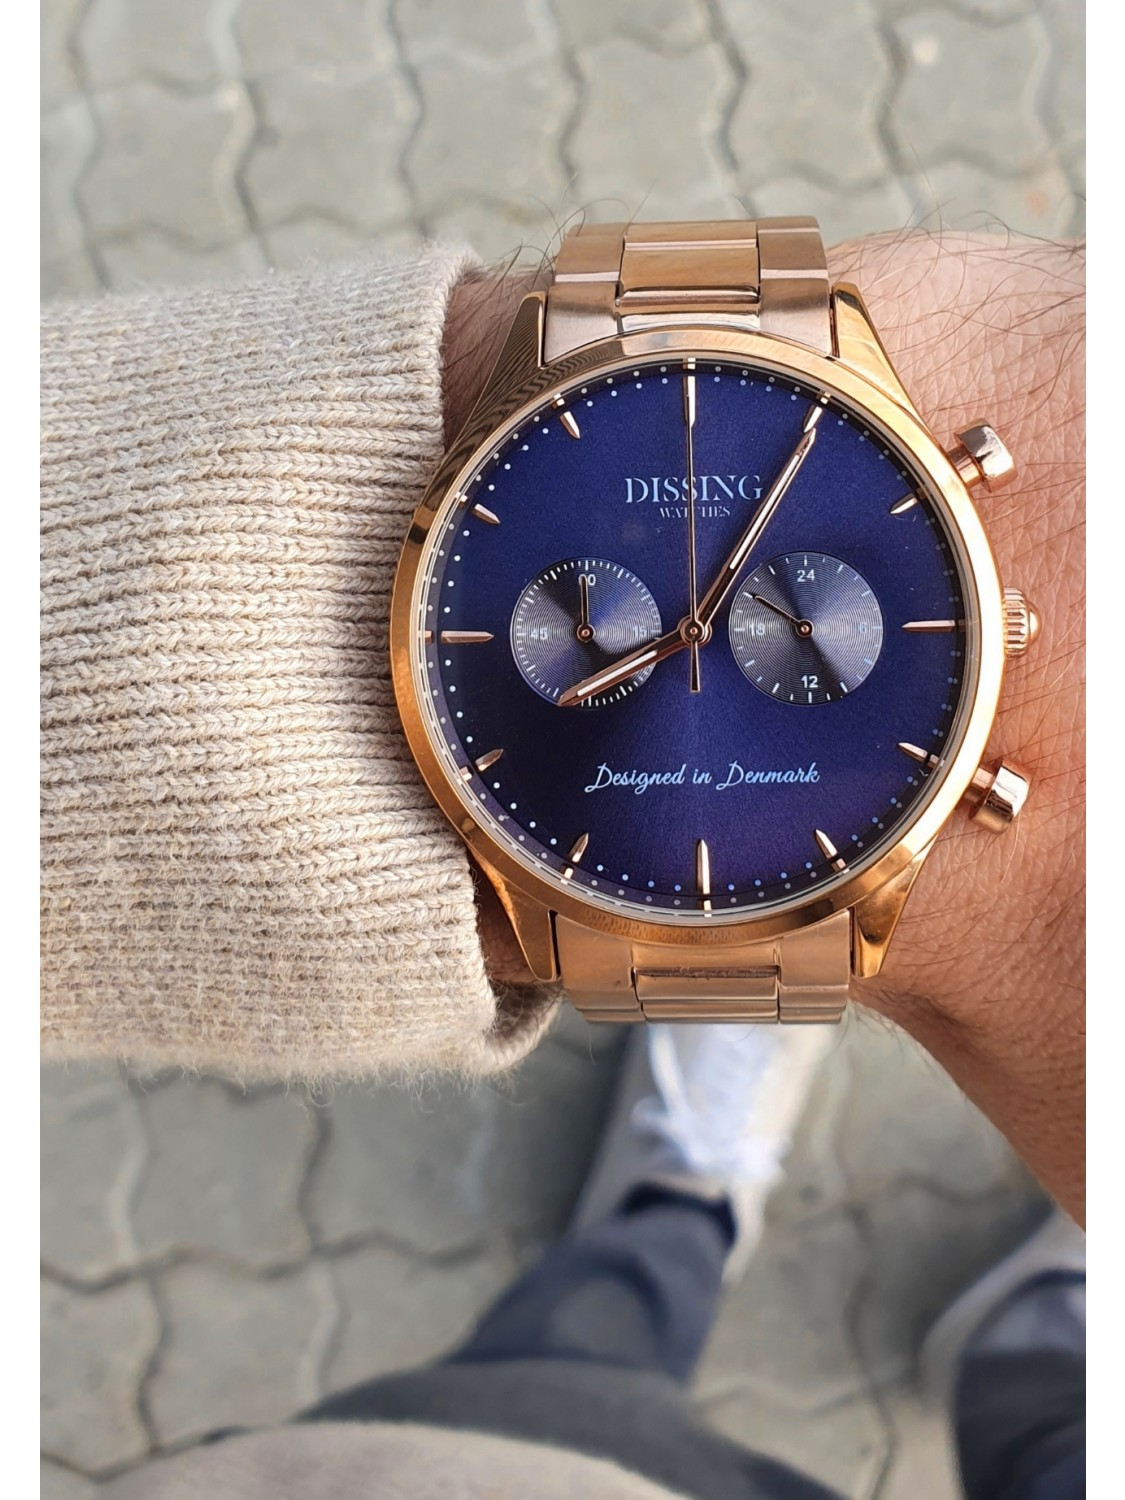 Dissing Steel Rose Gold/Blue-010